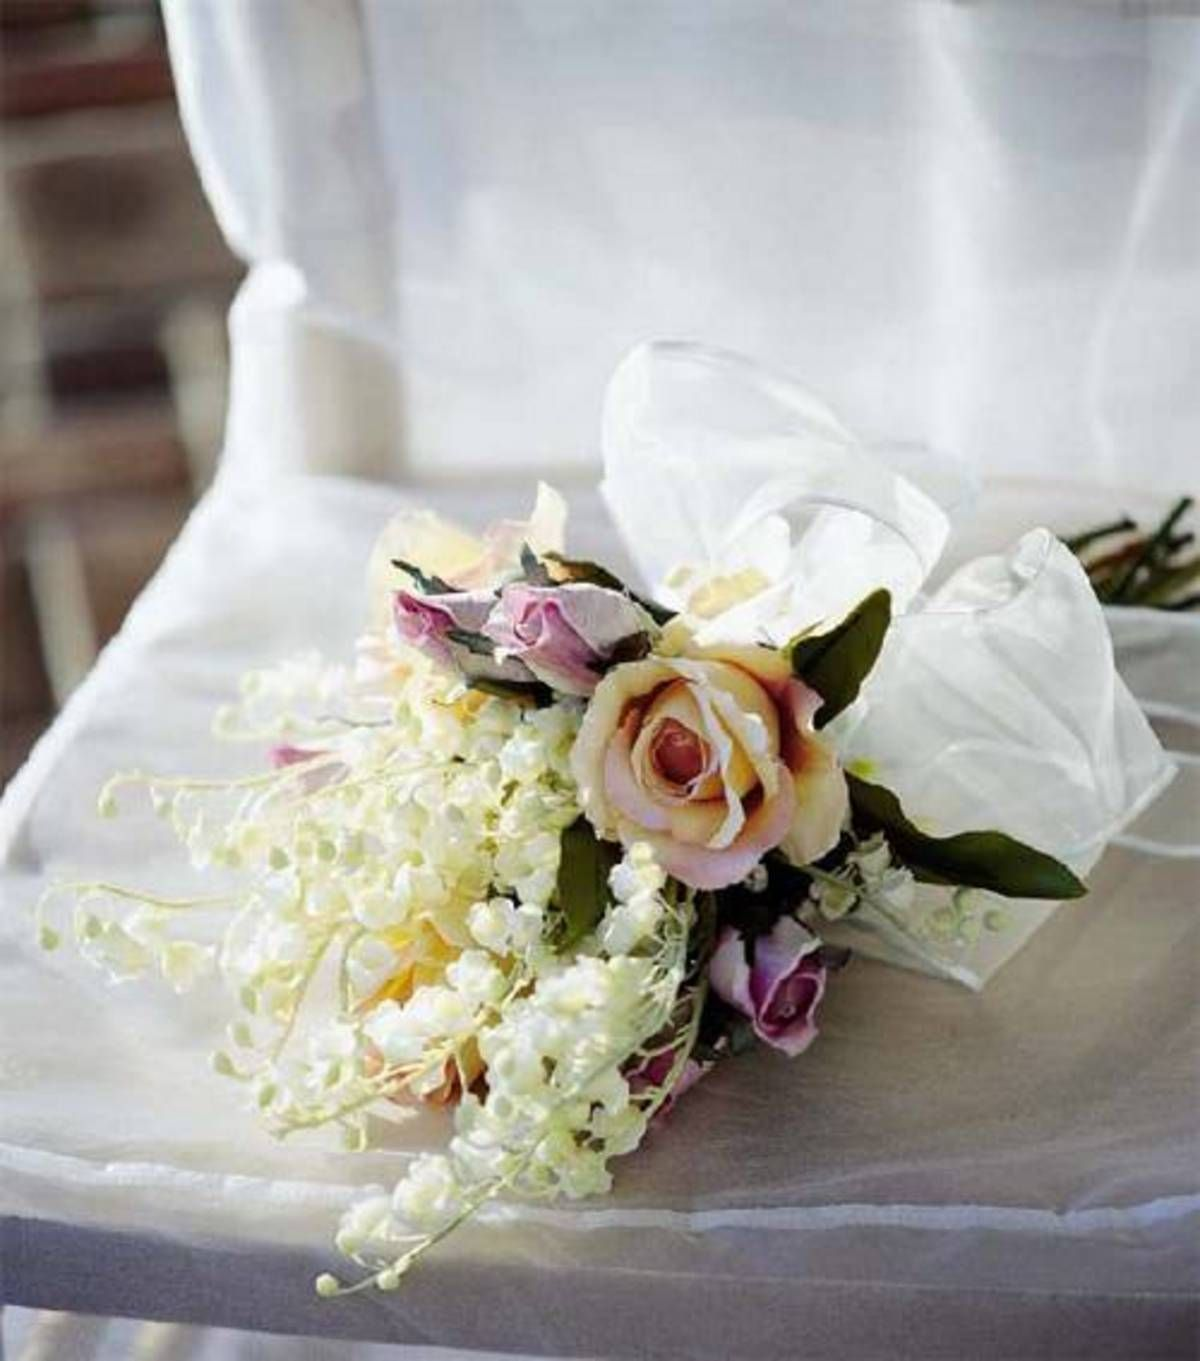 Making Your Own Wedding Flowers: Create Your Own Bridal Bouquet!